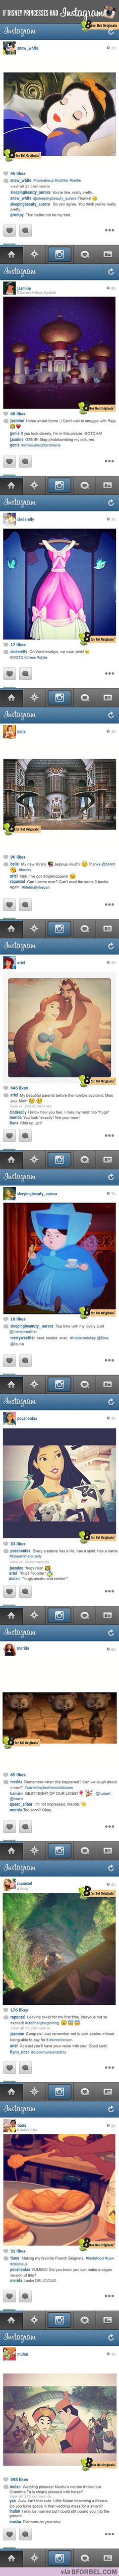 ...If Disney Princesses had Instagram. Hahaha this is great